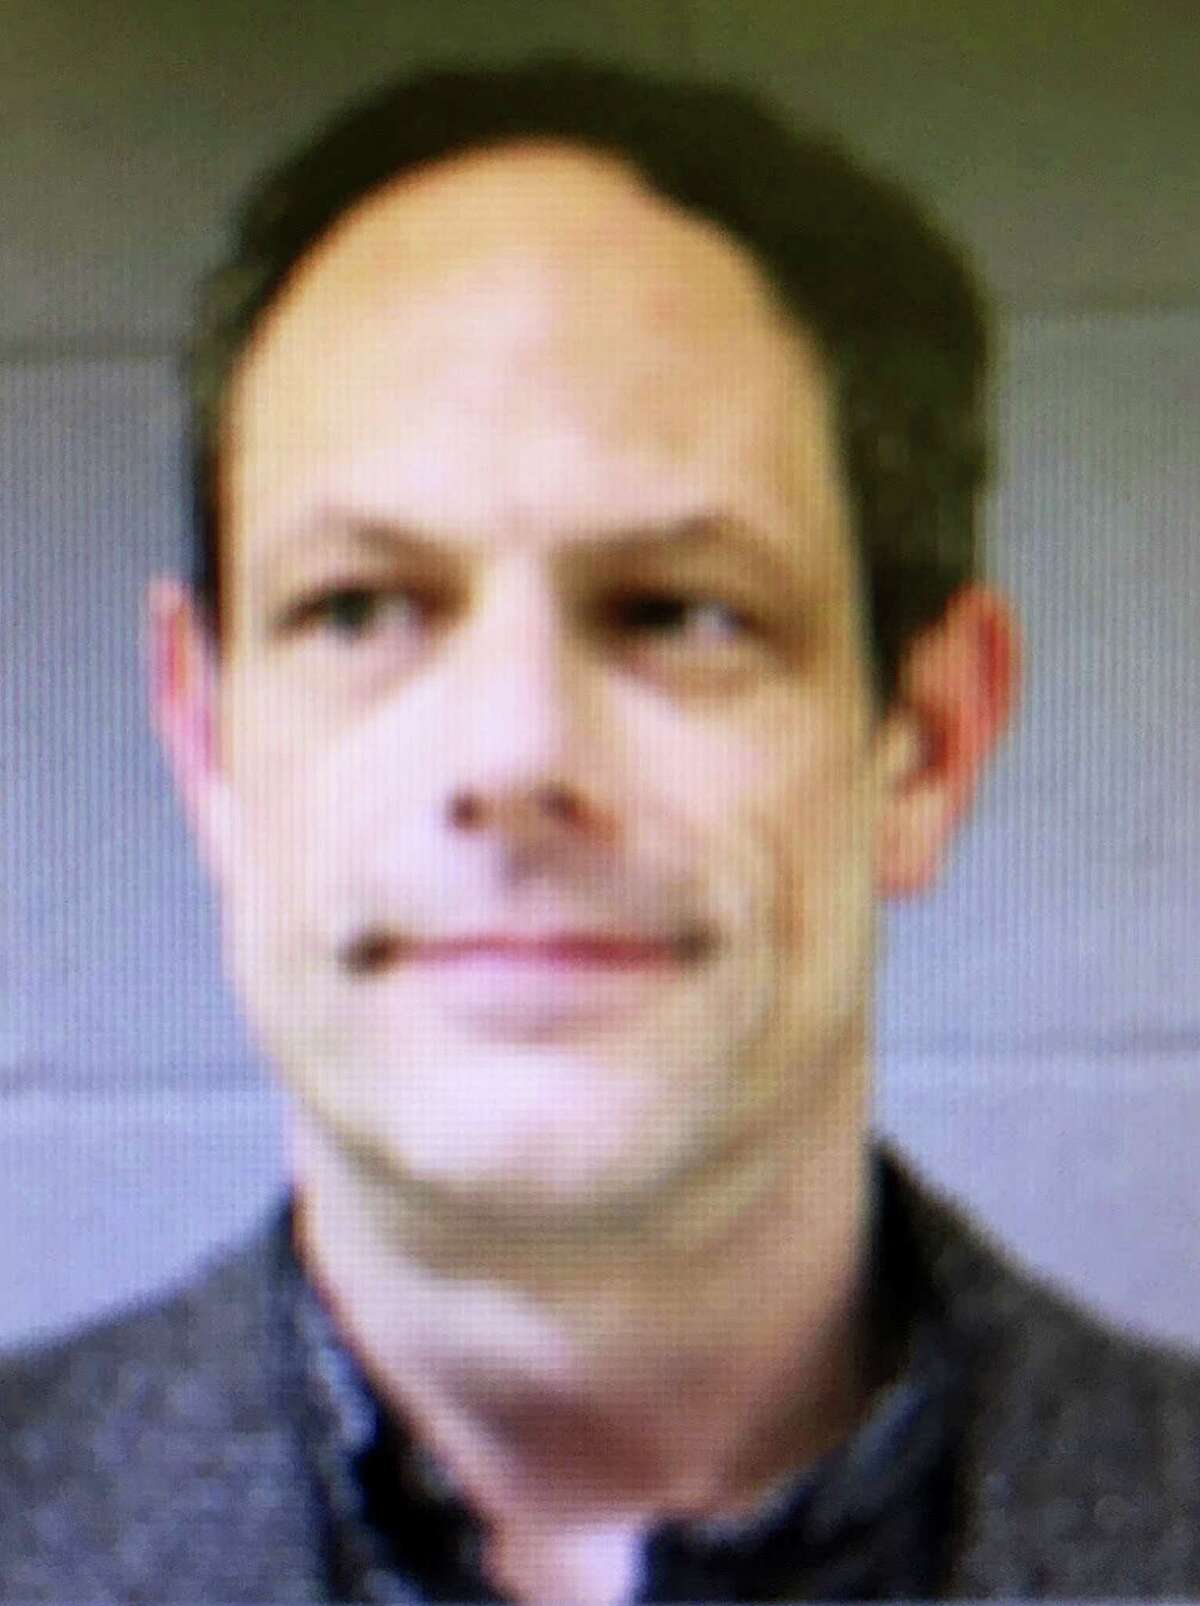 This booking photo released by the Newtown Police Department shows Jason Adams, arrested Wednesday, April 6, 2016, and charged with having a gun at the town's middle school. Adams, 46, a teacher at the school, was charged with possession of a weapon on school grounds, which is illegal in Connecticut.